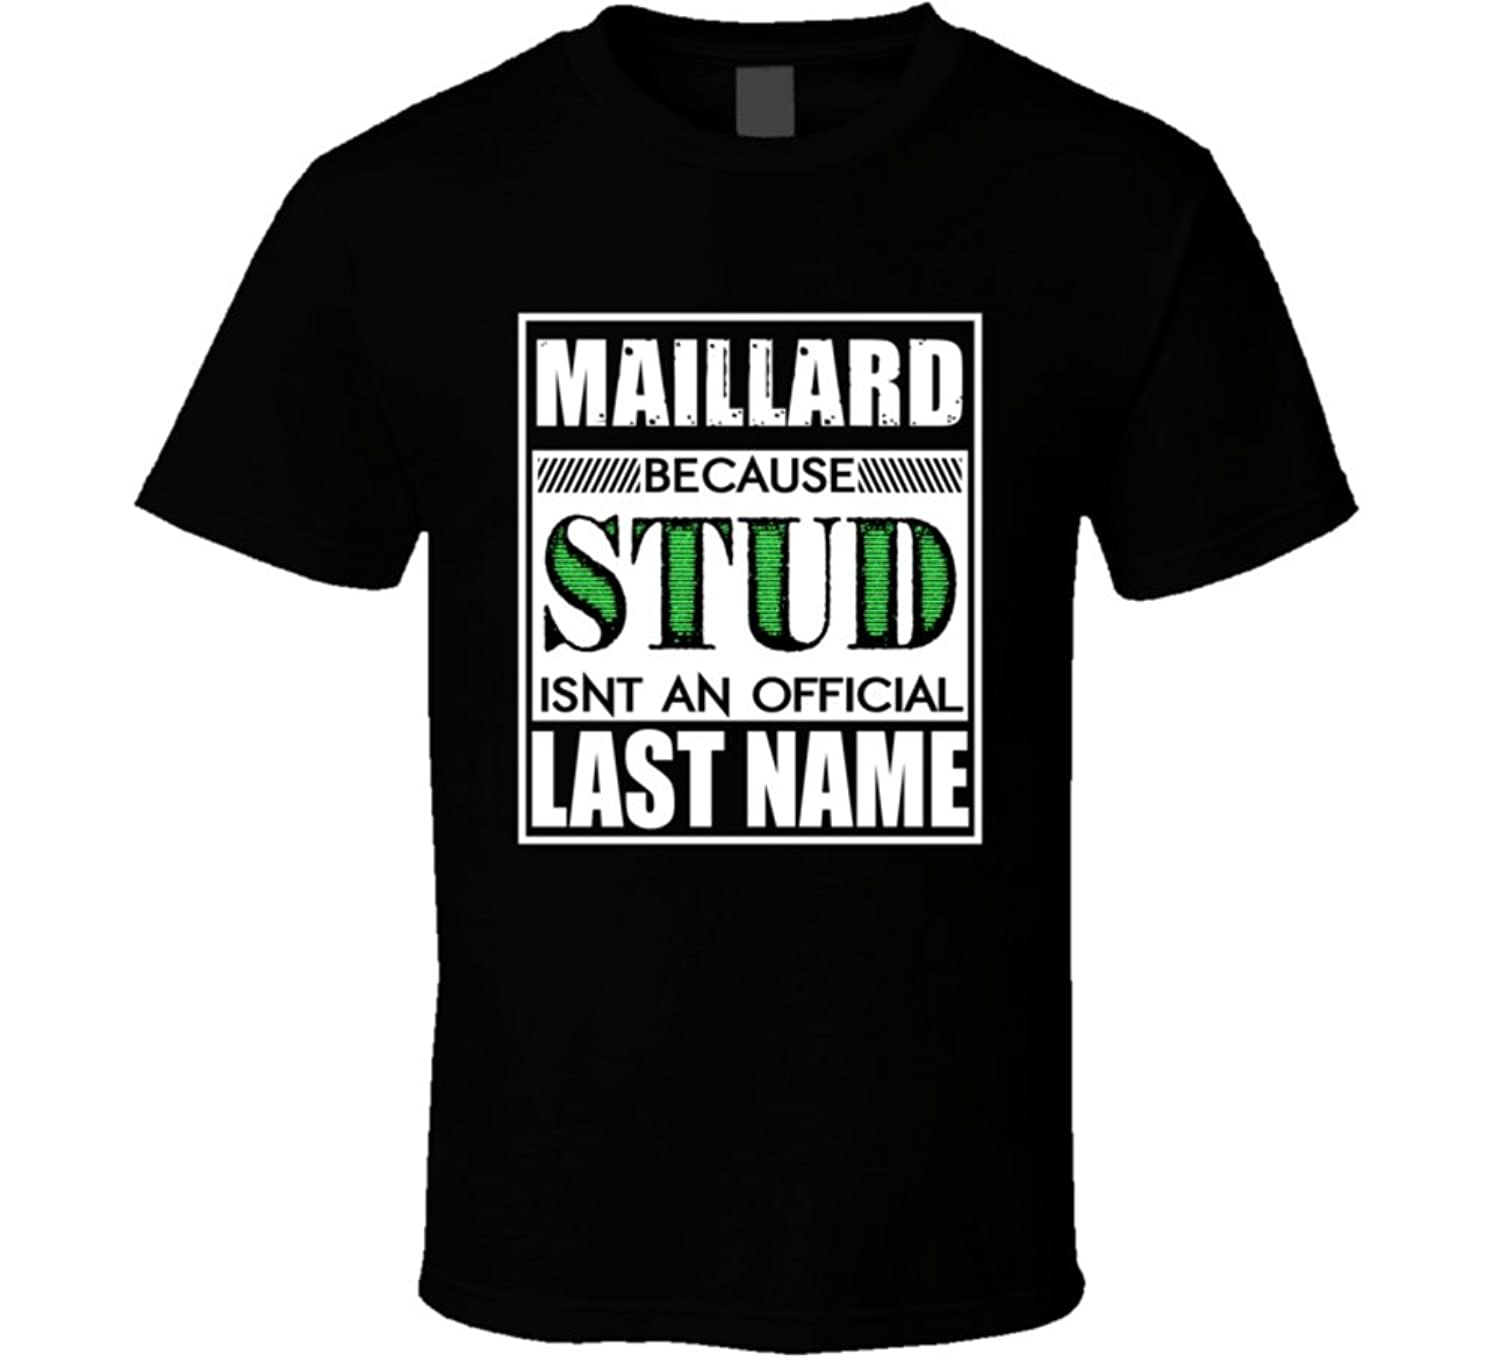 Maillard Because Stud official Last Name Funny T Shirt